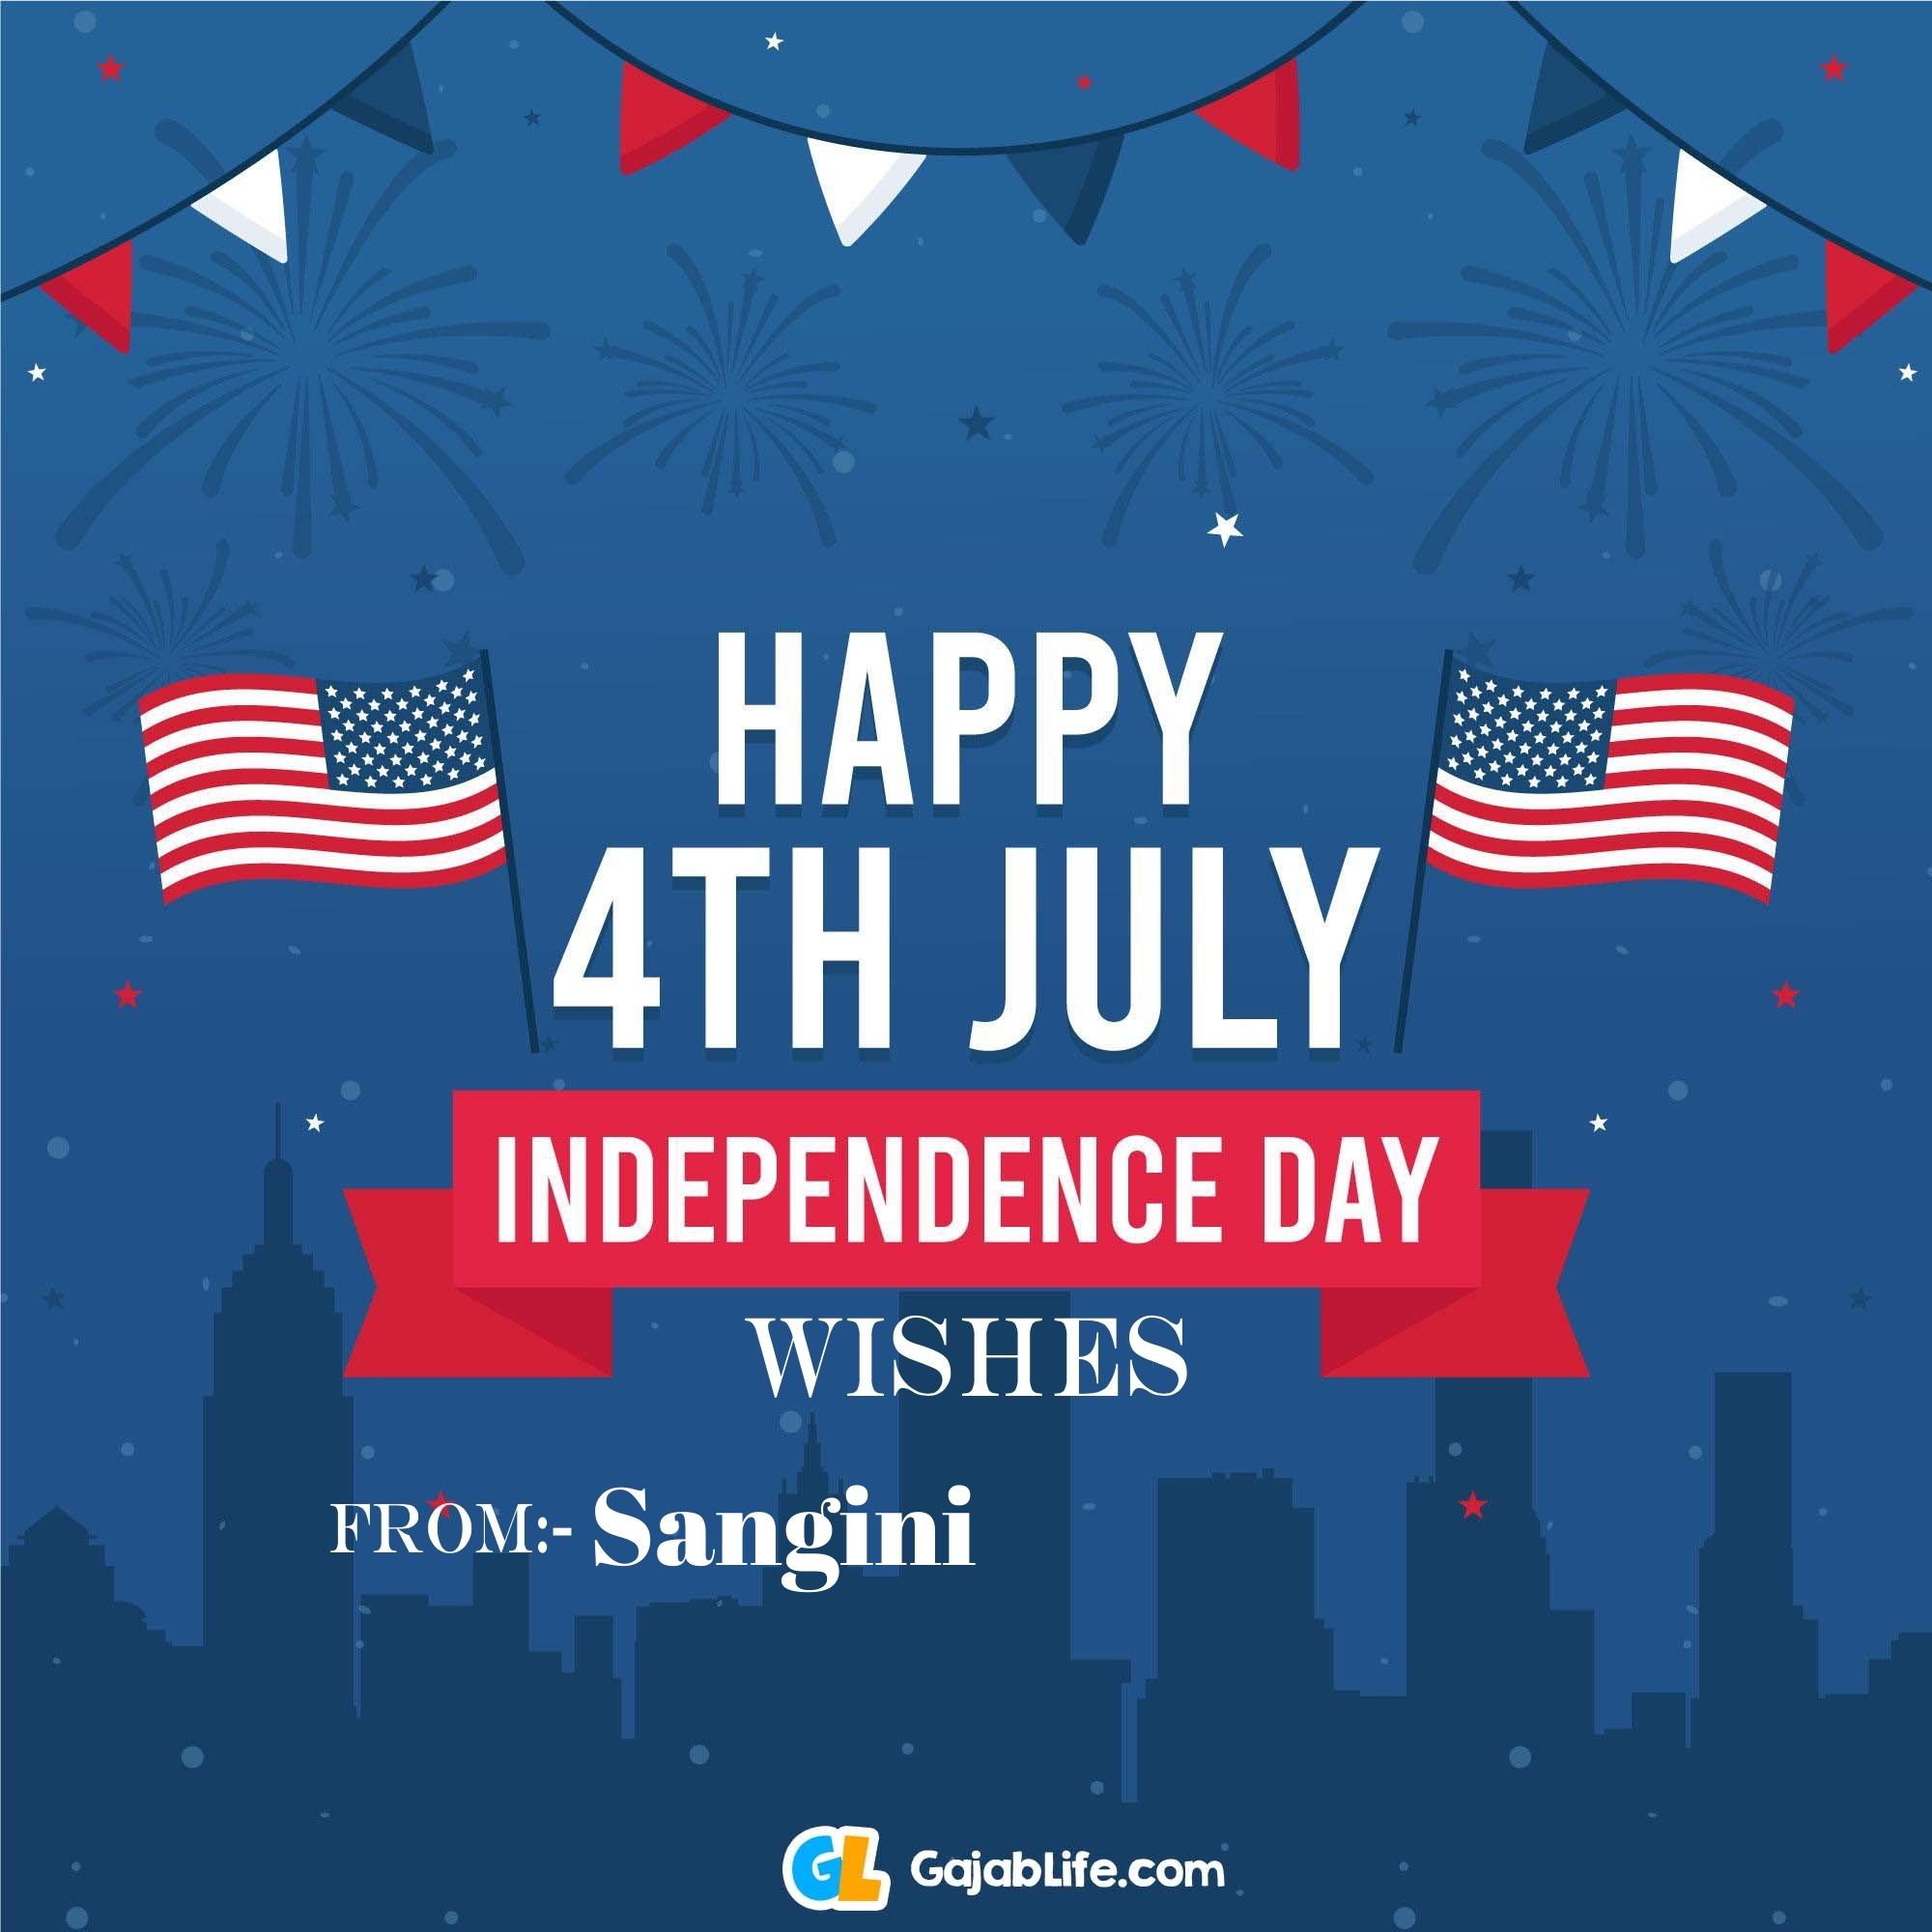 Sangini happy independence day united states of america images